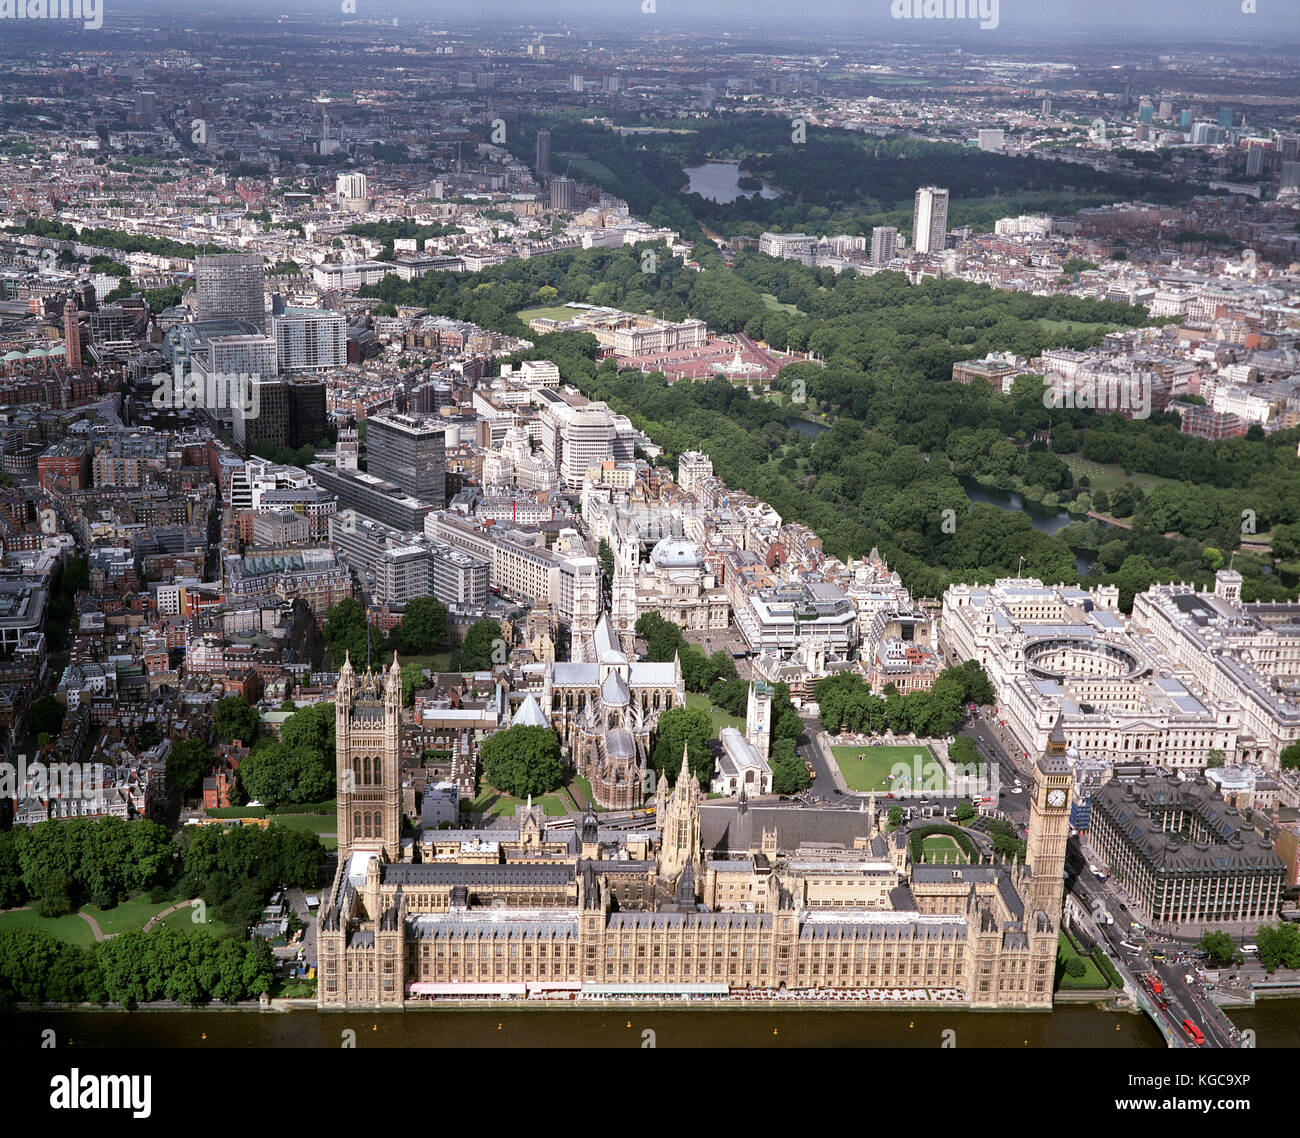 A aerial view of London showing the Houses of Parliament, Westminster Abbey, Buckingham Palace, Parliament Square, - Stock Image